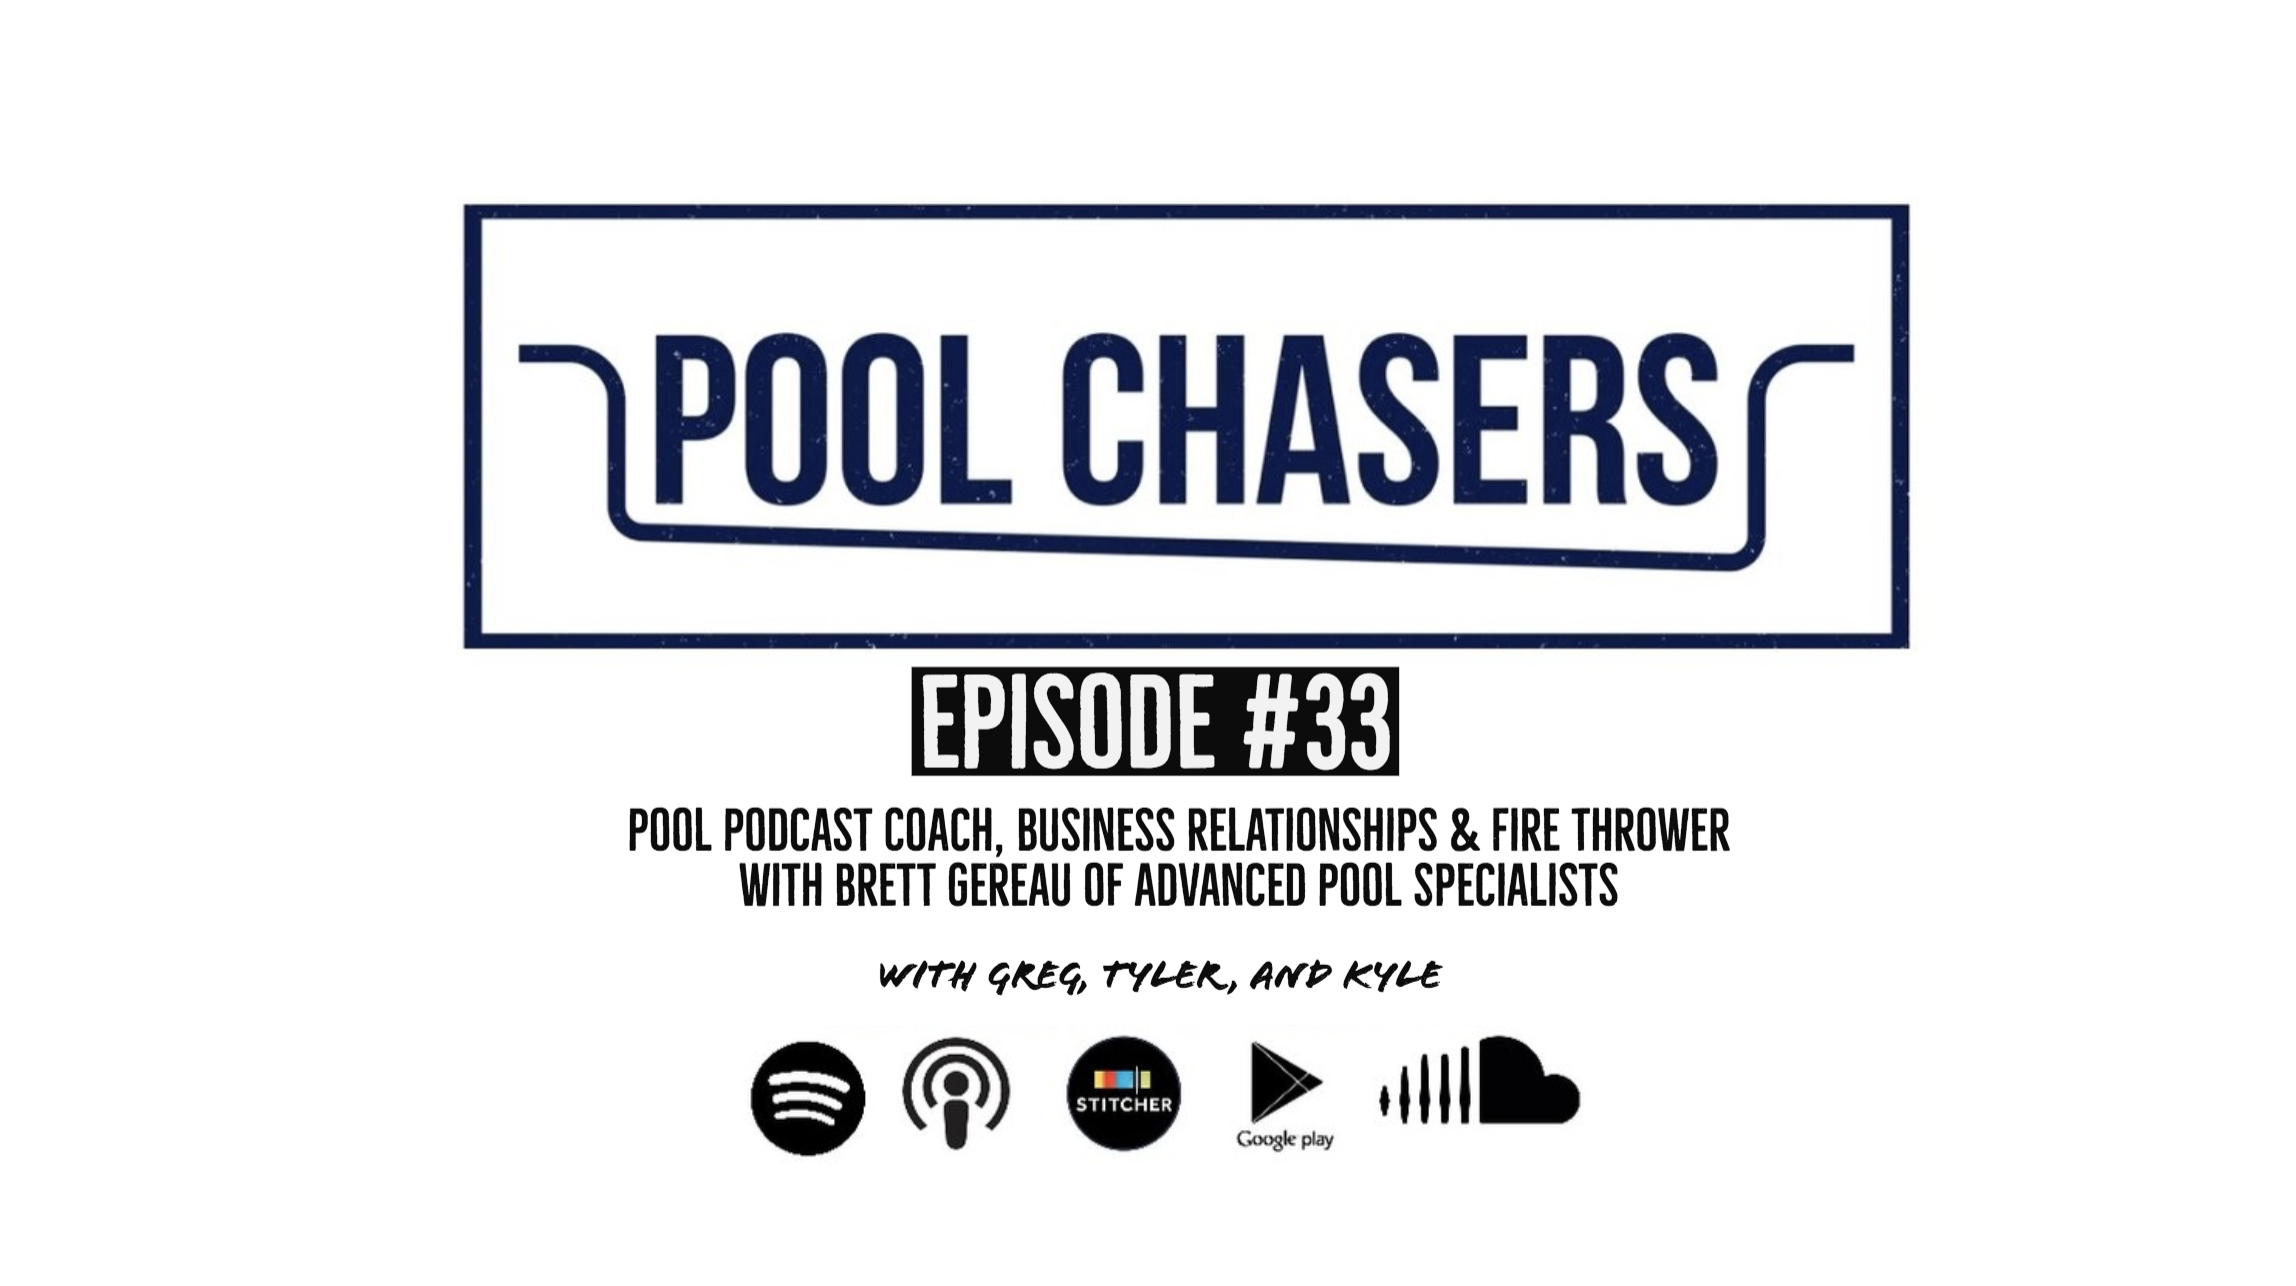 Pool Chasers Episode 33 Brett Gereau Advanced Pool Specialists